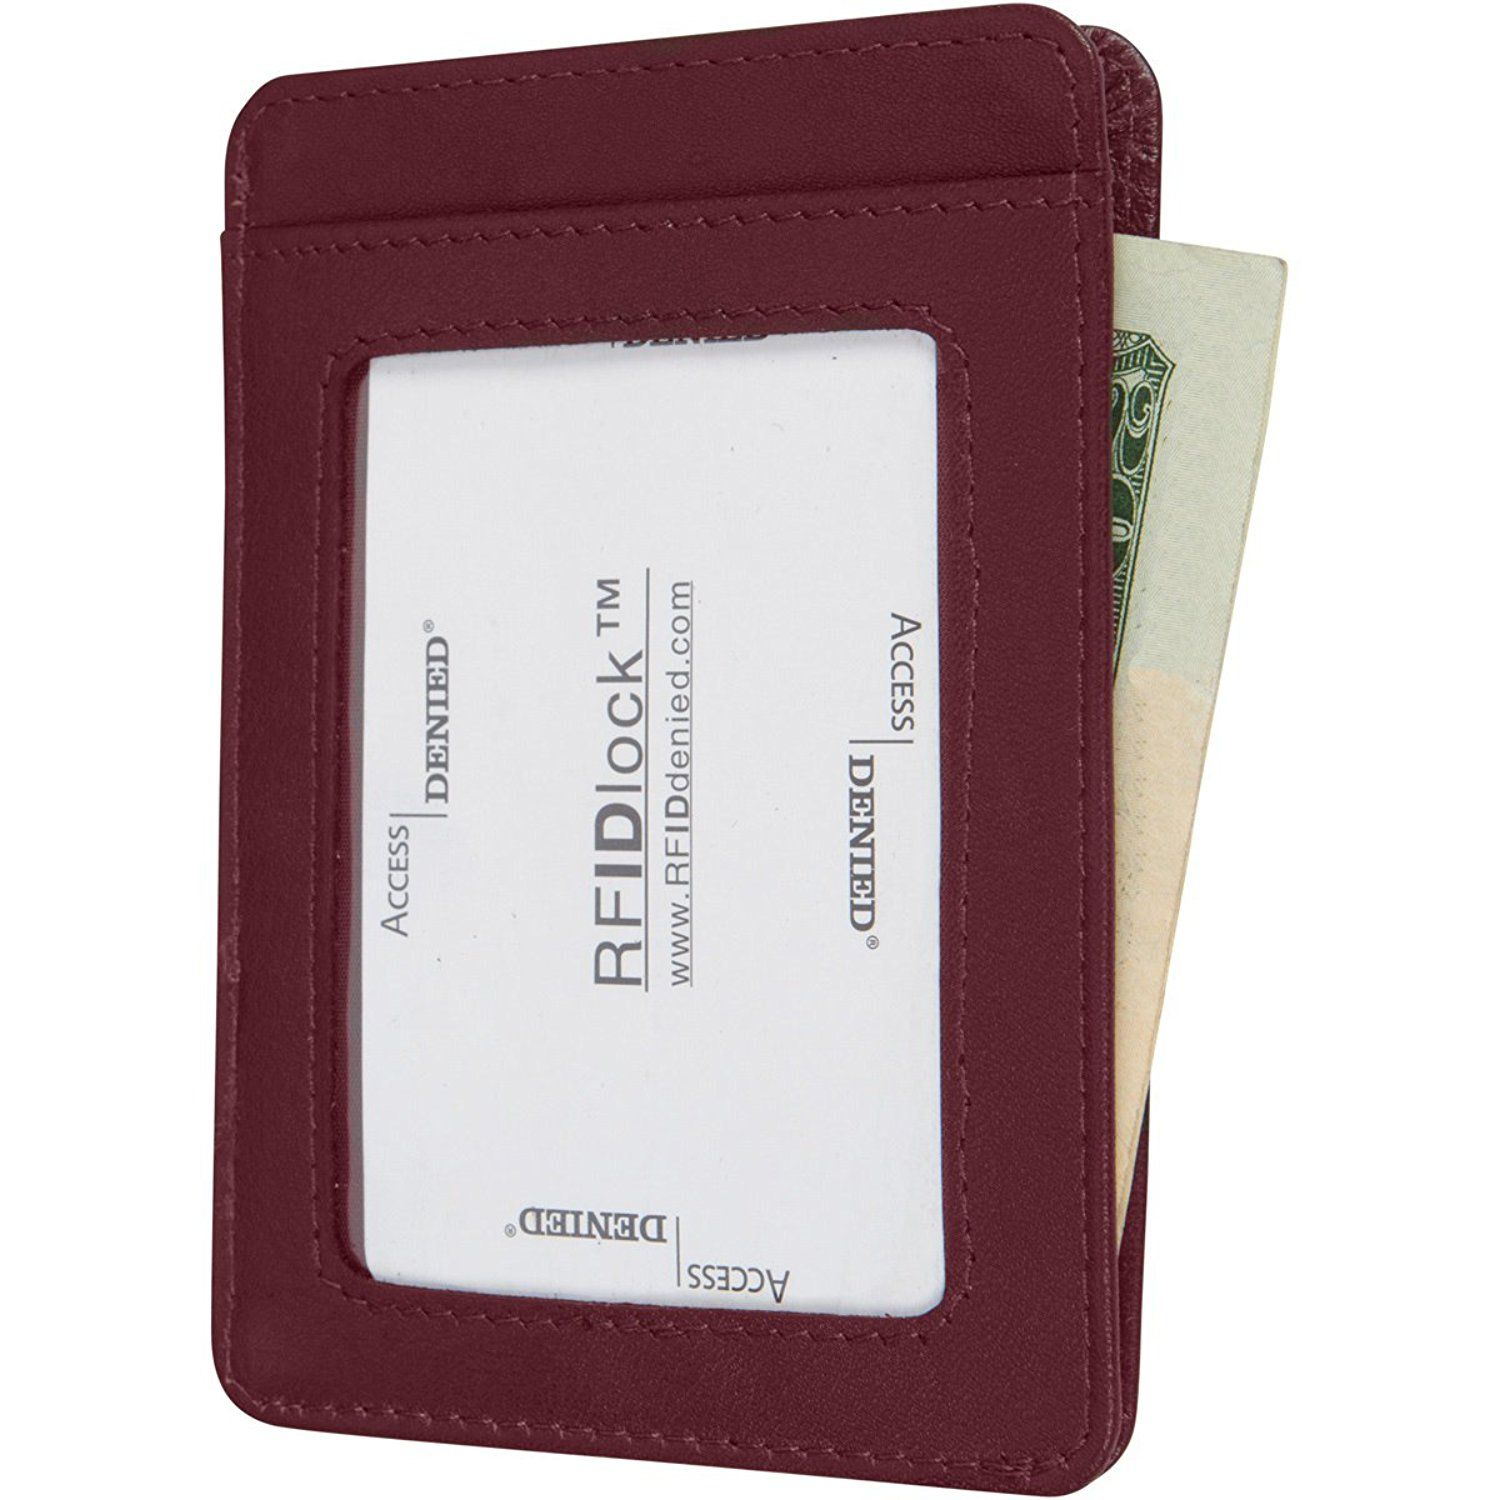 Access denied rfid blocking front pocket leather wallet mini slim access denied rfid blocking front pocket leather wallet mini slim card holder mulberry at reheart Gallery